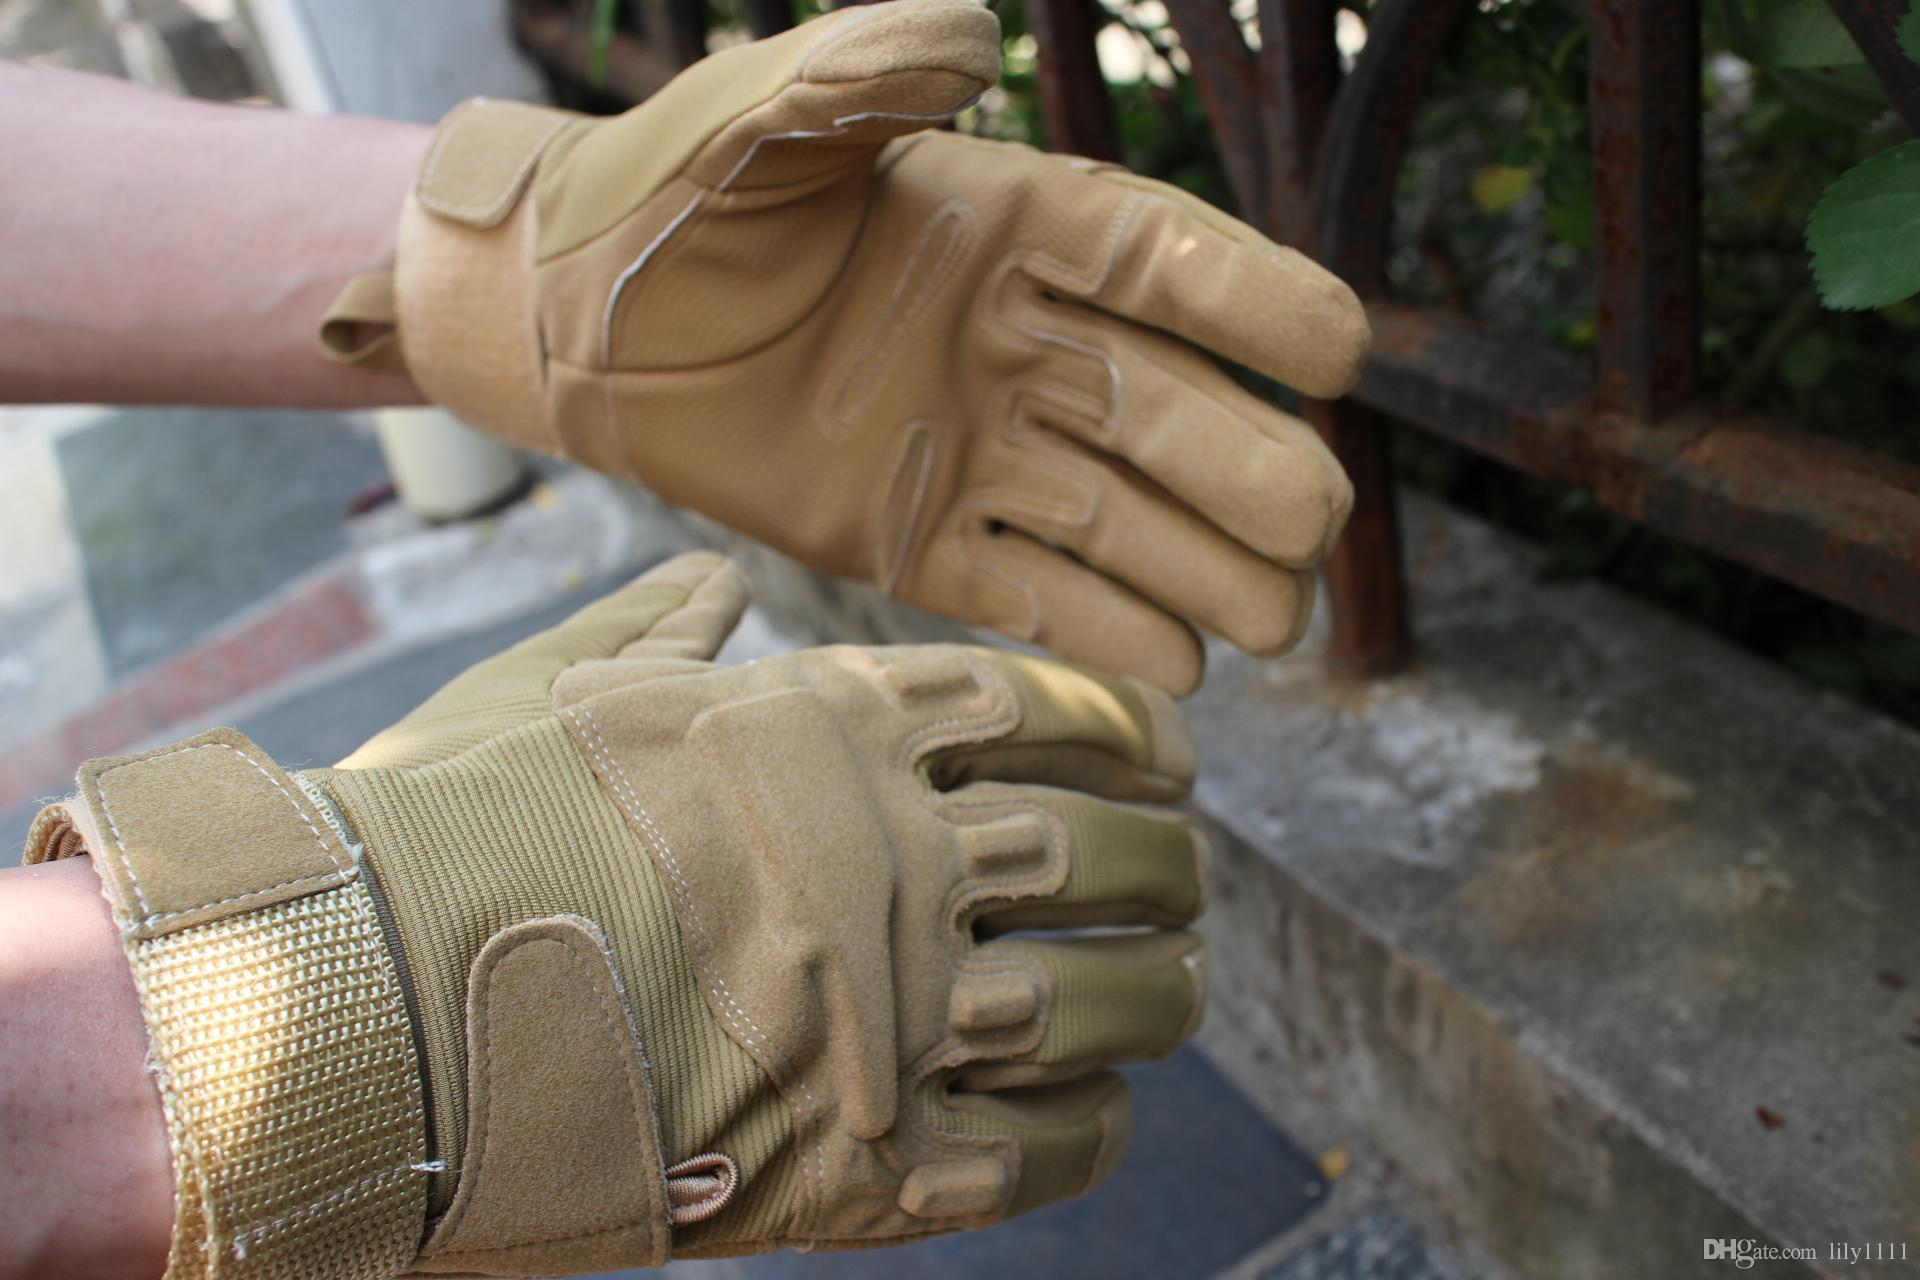 Shanghai Story Men's Army Gloves Man Full Finger Tactical Gloves Military Quick Dry Anti-Slippery Leather Combat Gloves